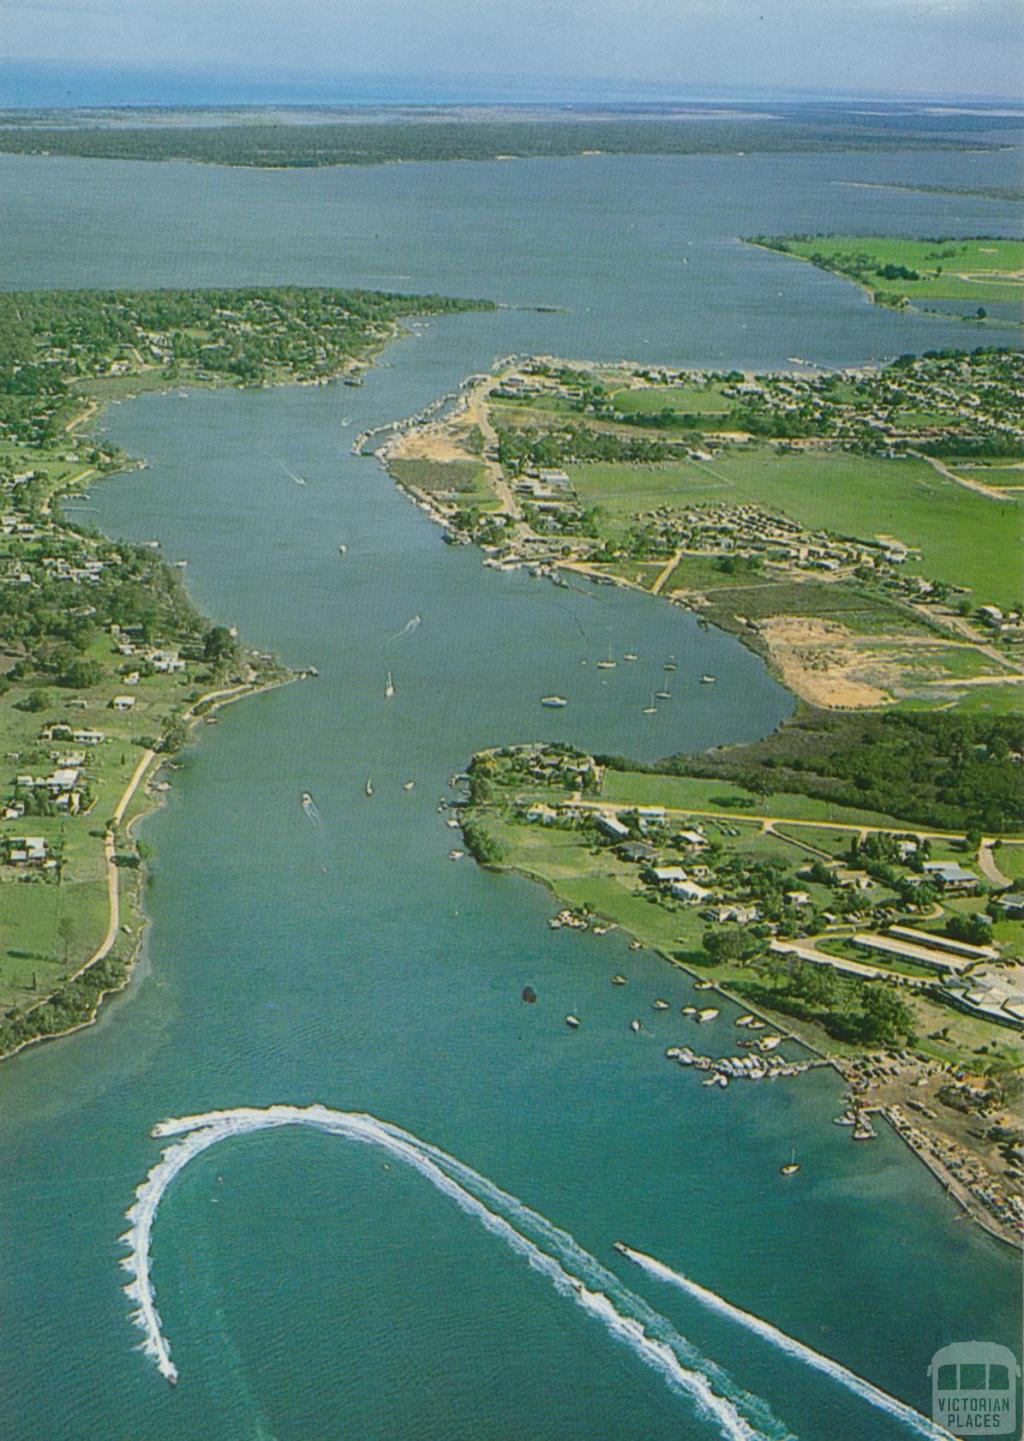 Aerial view of lakeside Paynesville